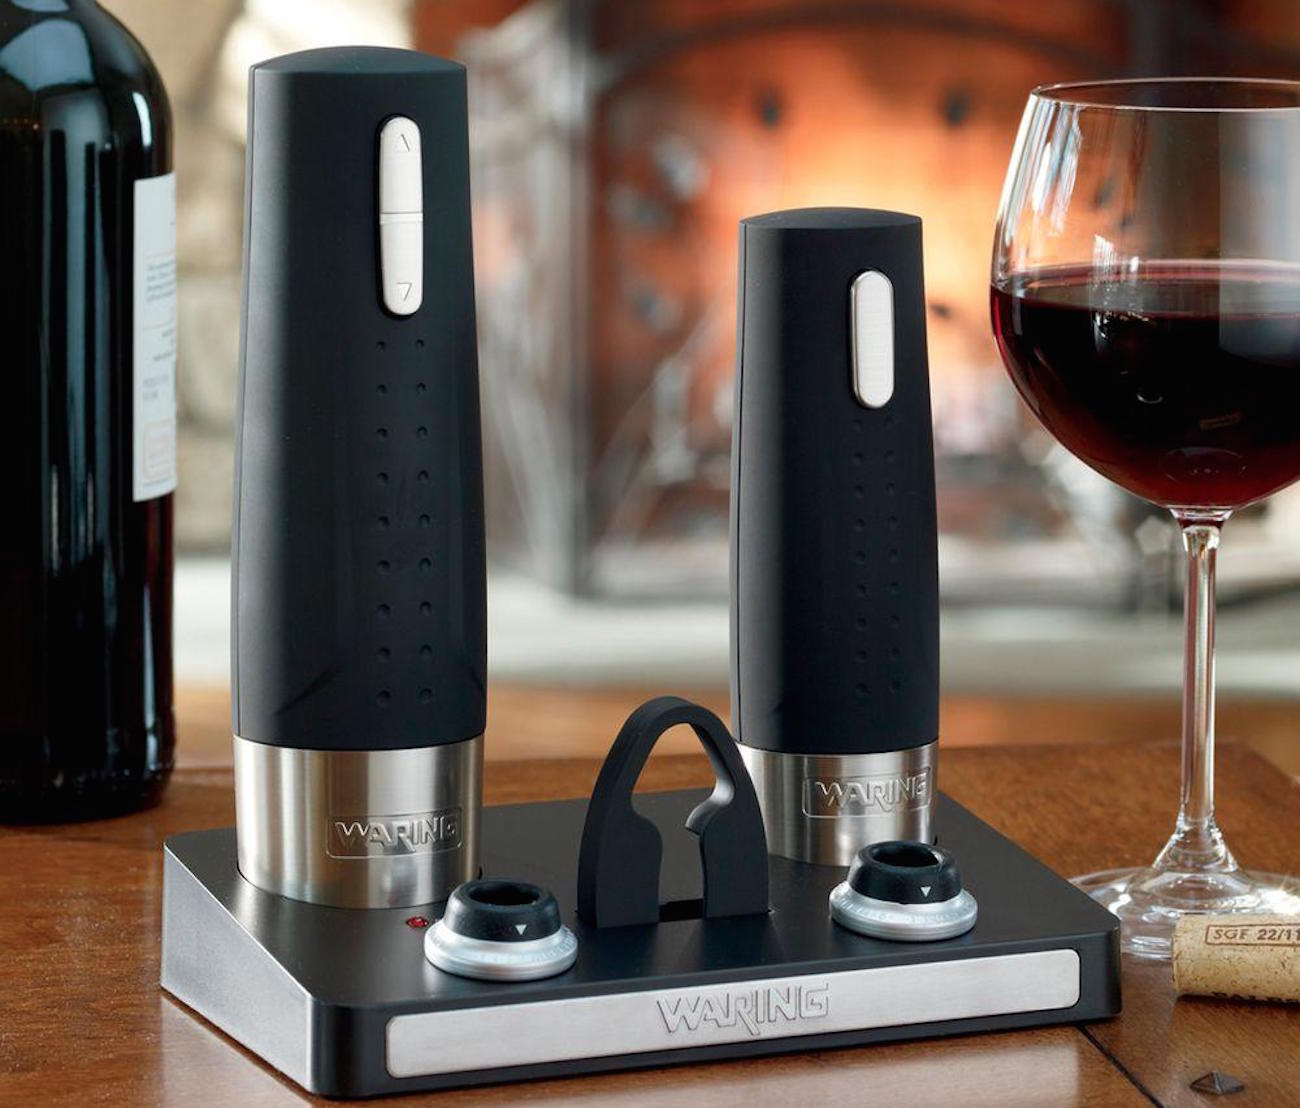 Waring Pro Wine Center – With an Electric Wine Opener and Wine Preserver